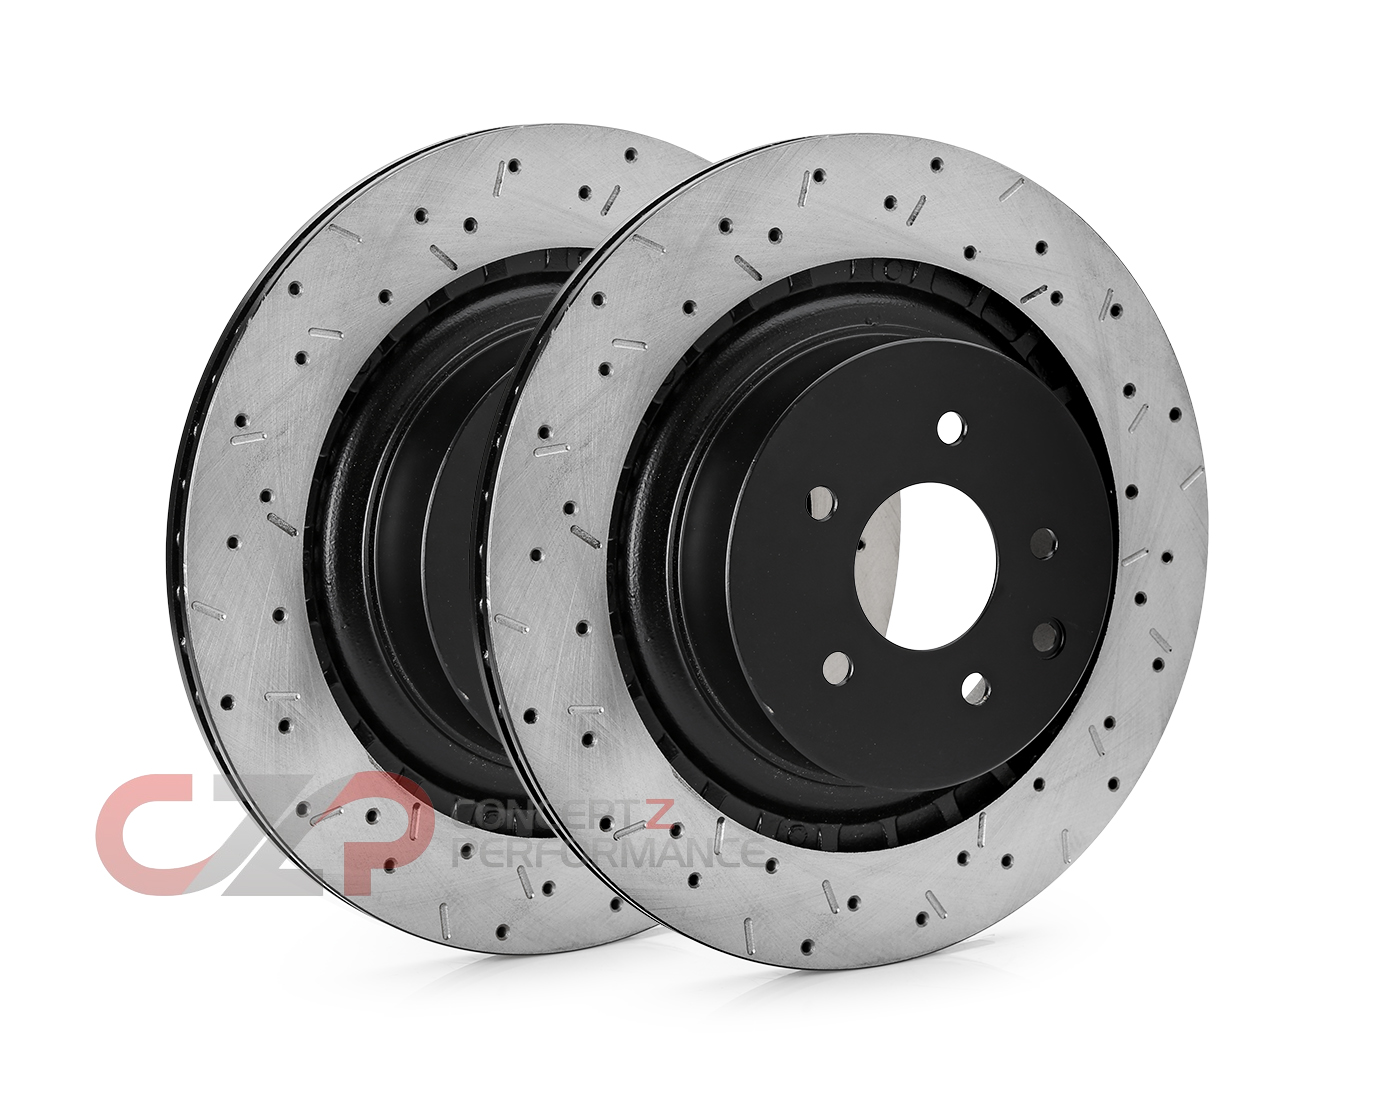 Centric Brake Front Rotor Set, DBA Style Drilled/Slotted Set, Akebono Sport Caliper - Nissan 370Z / Infiniti G37 Q60